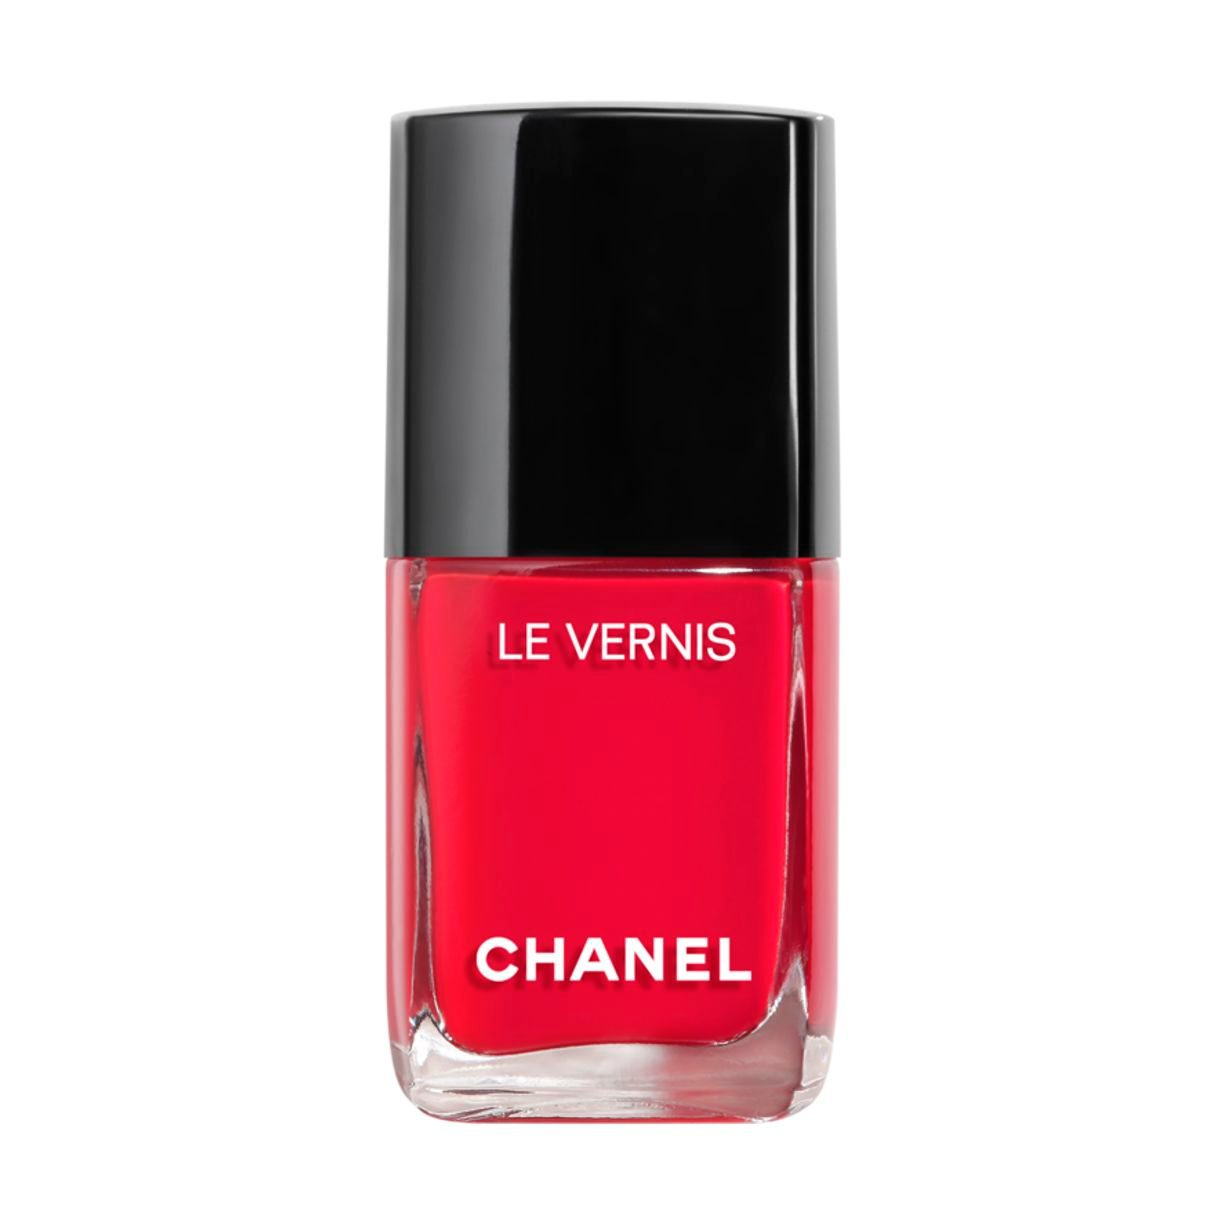 Chanel Le Vernis Chanel Le Vernis new pictures